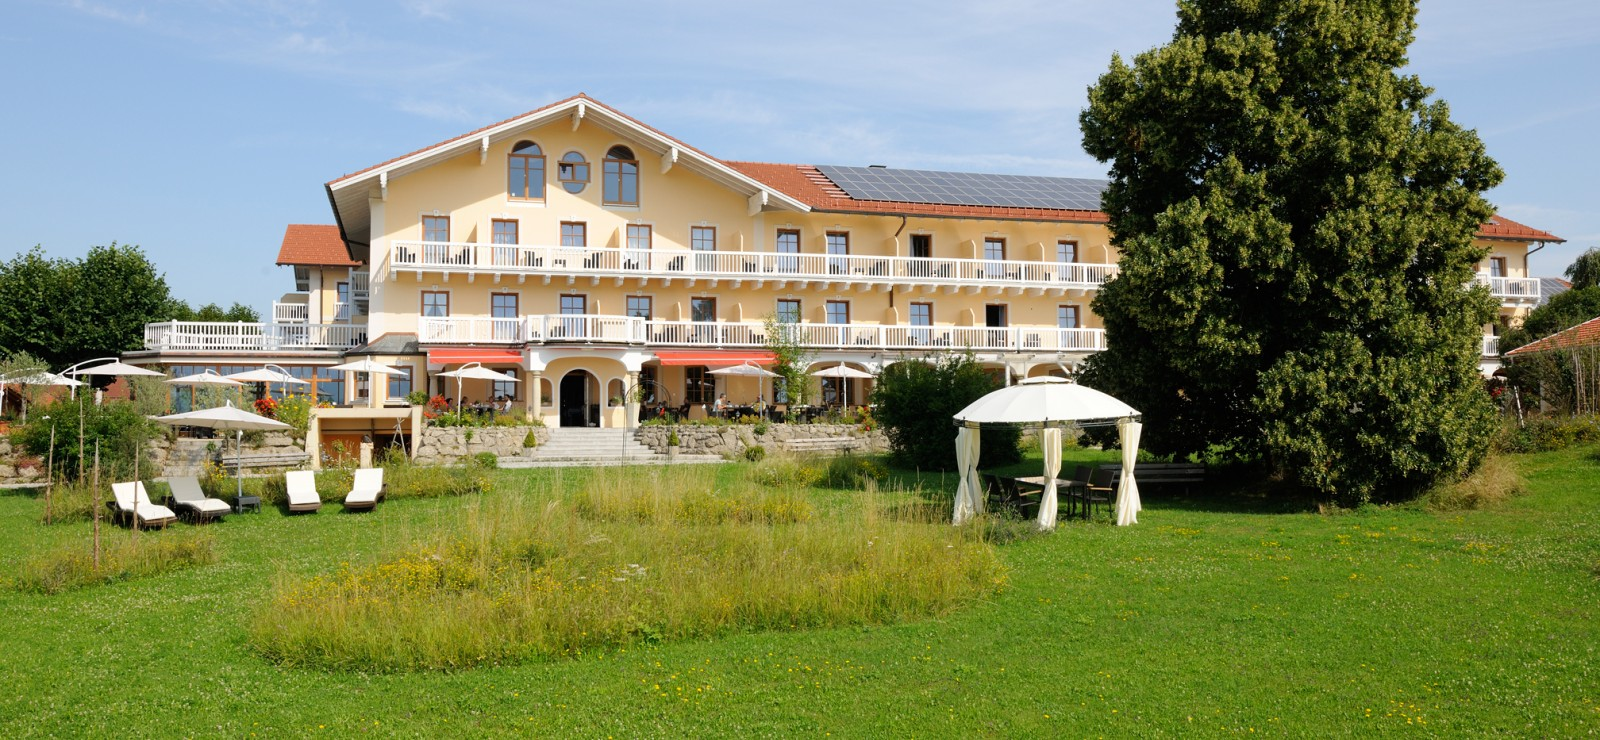 Spa Hotel Gut Edermann Bilder | Bild 1